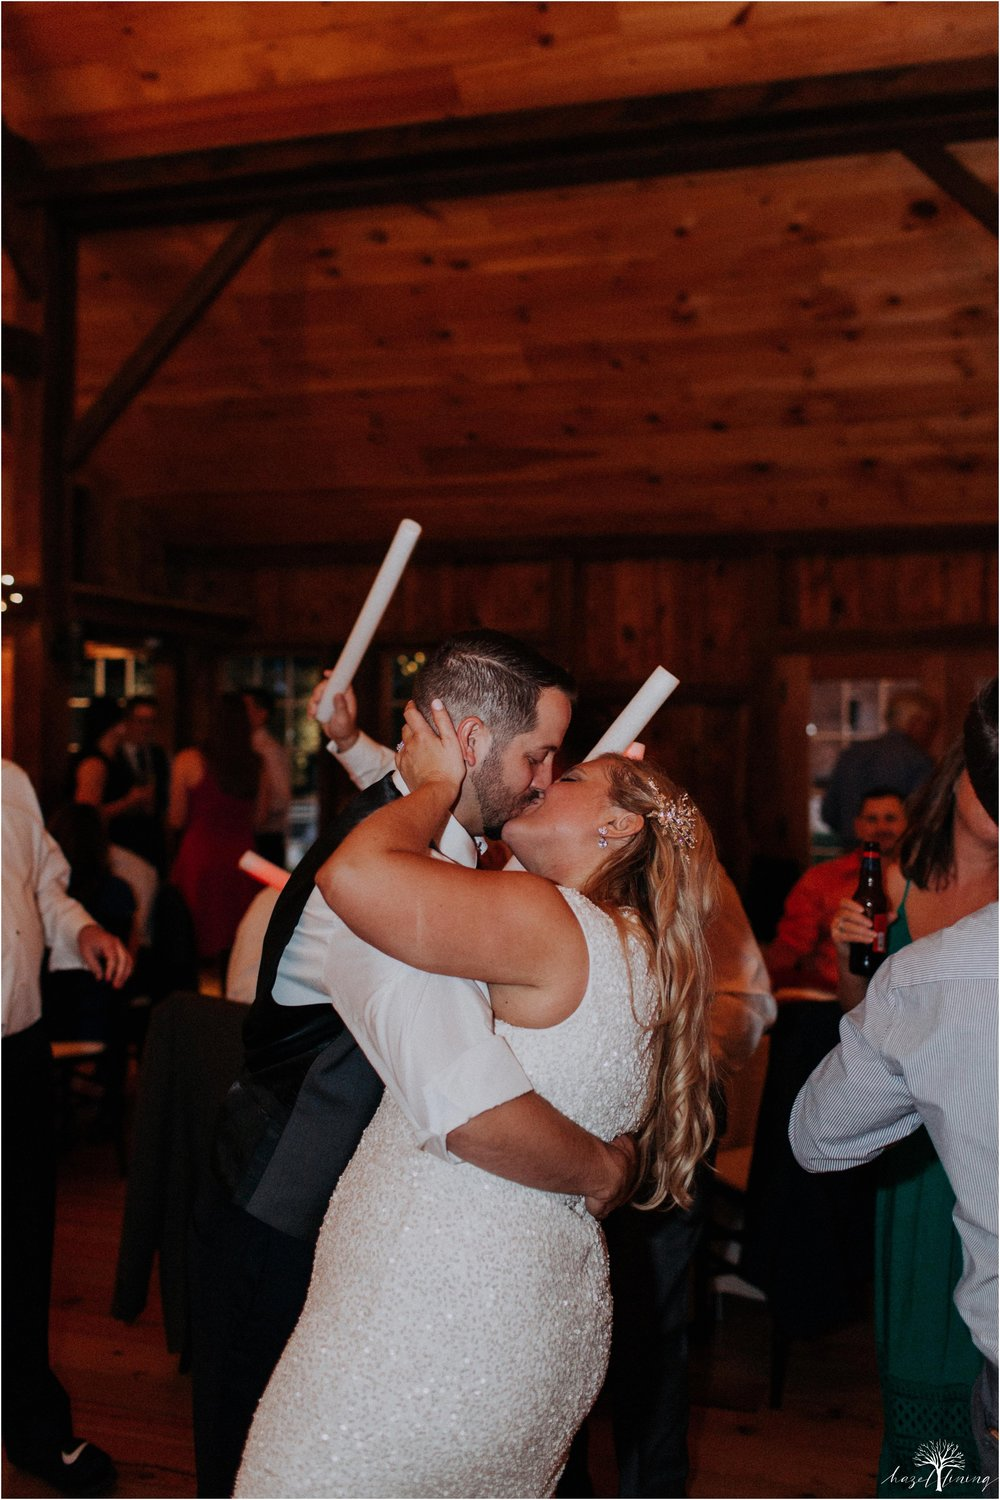 melanie-mnich-john-butler-the-barn-at-silverstone-summer-lancaster-pennsylvania-wedding-hazel-lining-travel-wedding-elopement-photography_0155.jpg